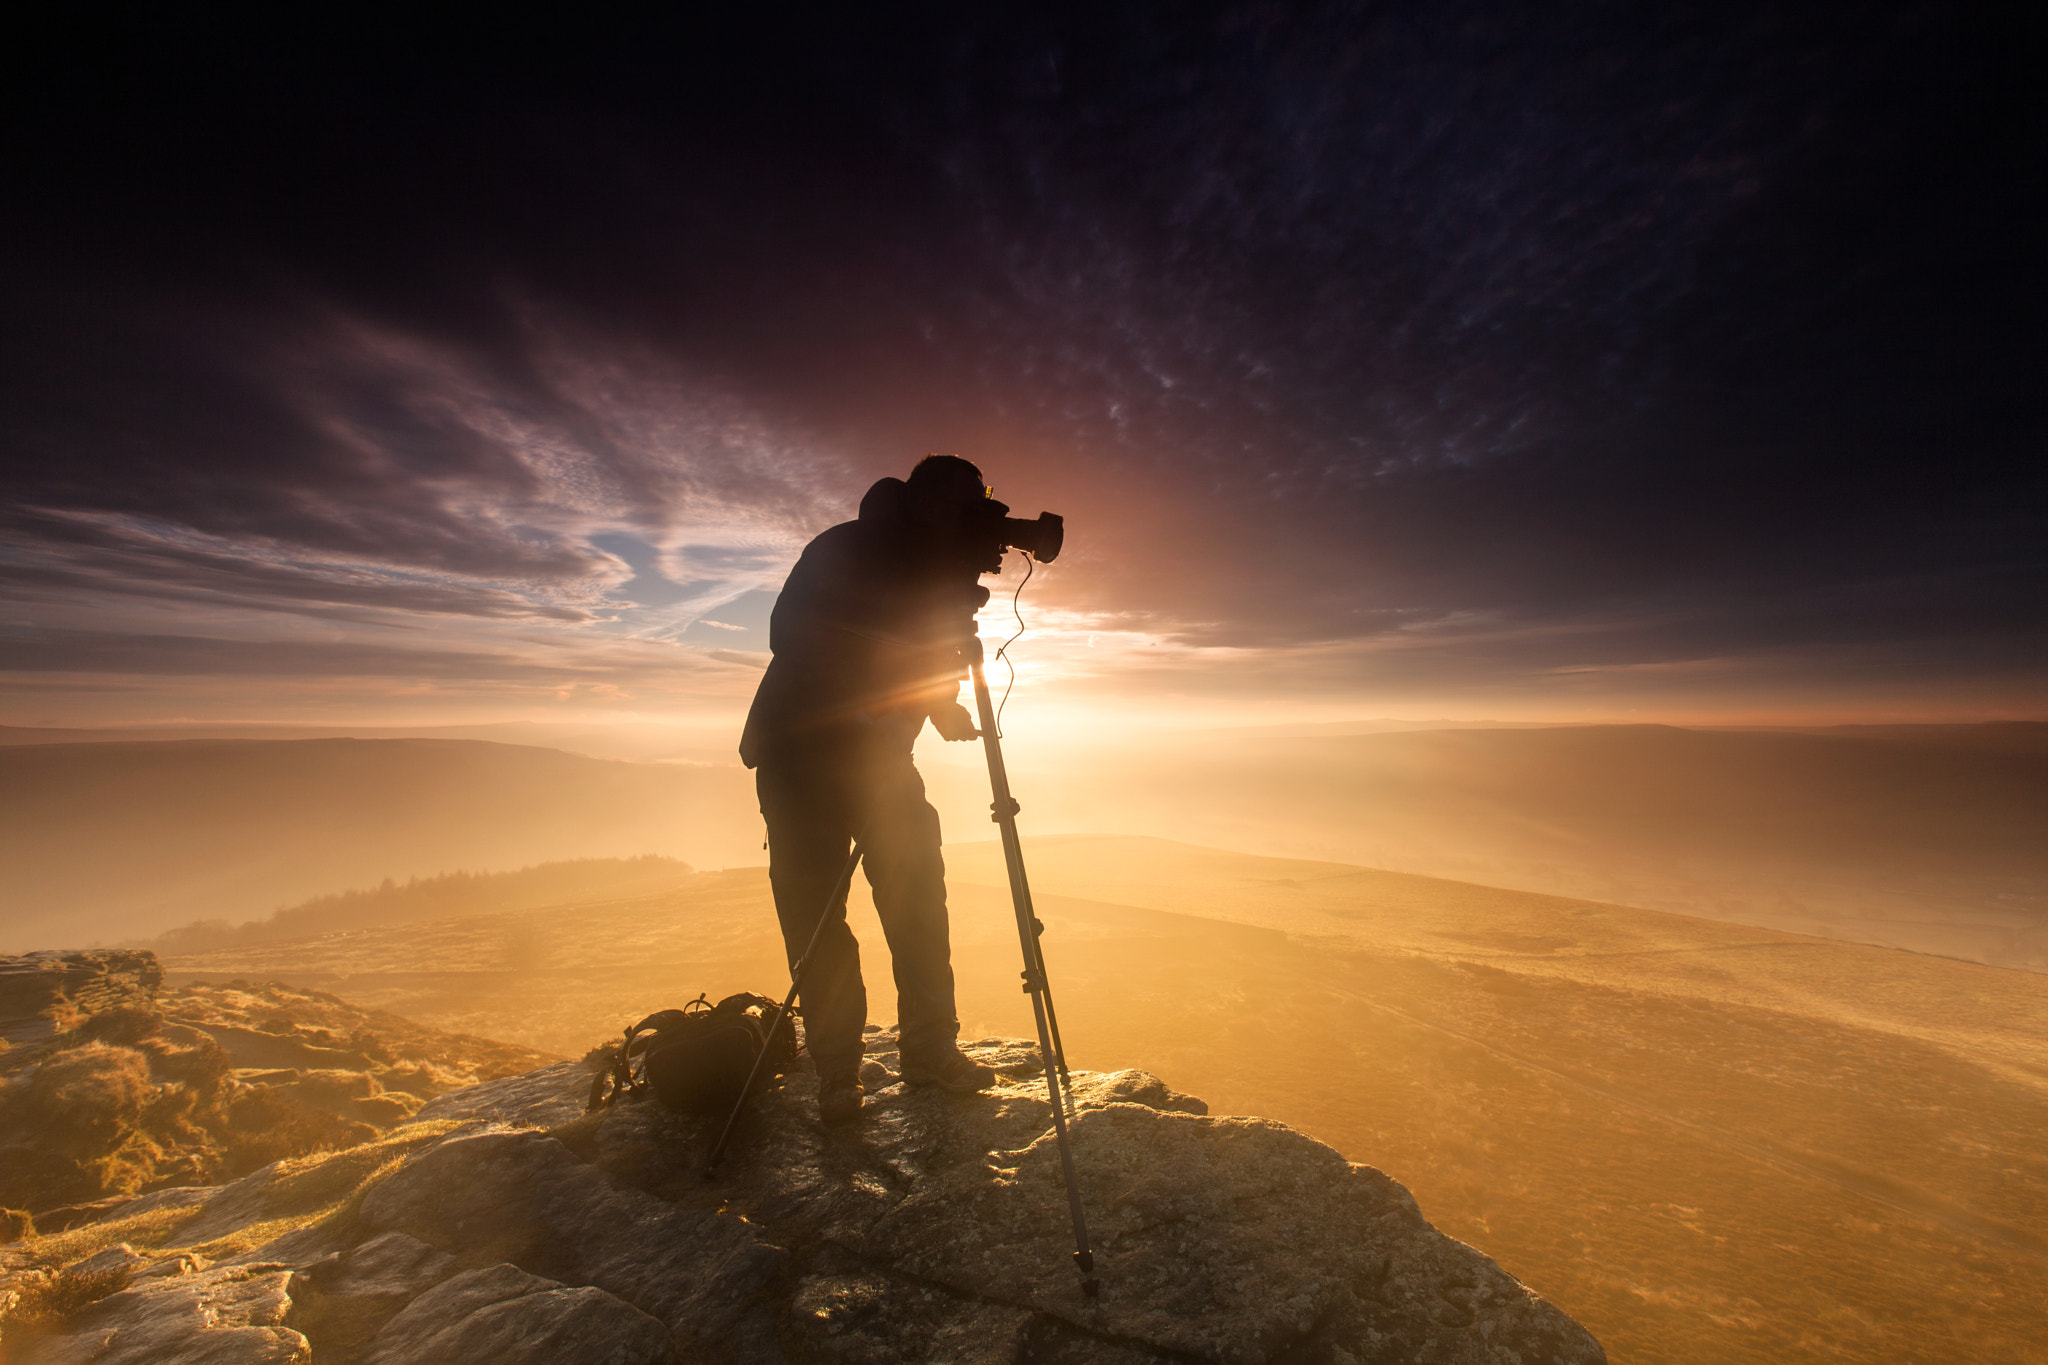 Photograph Chasing the Light! by Andrew Yu on 500px